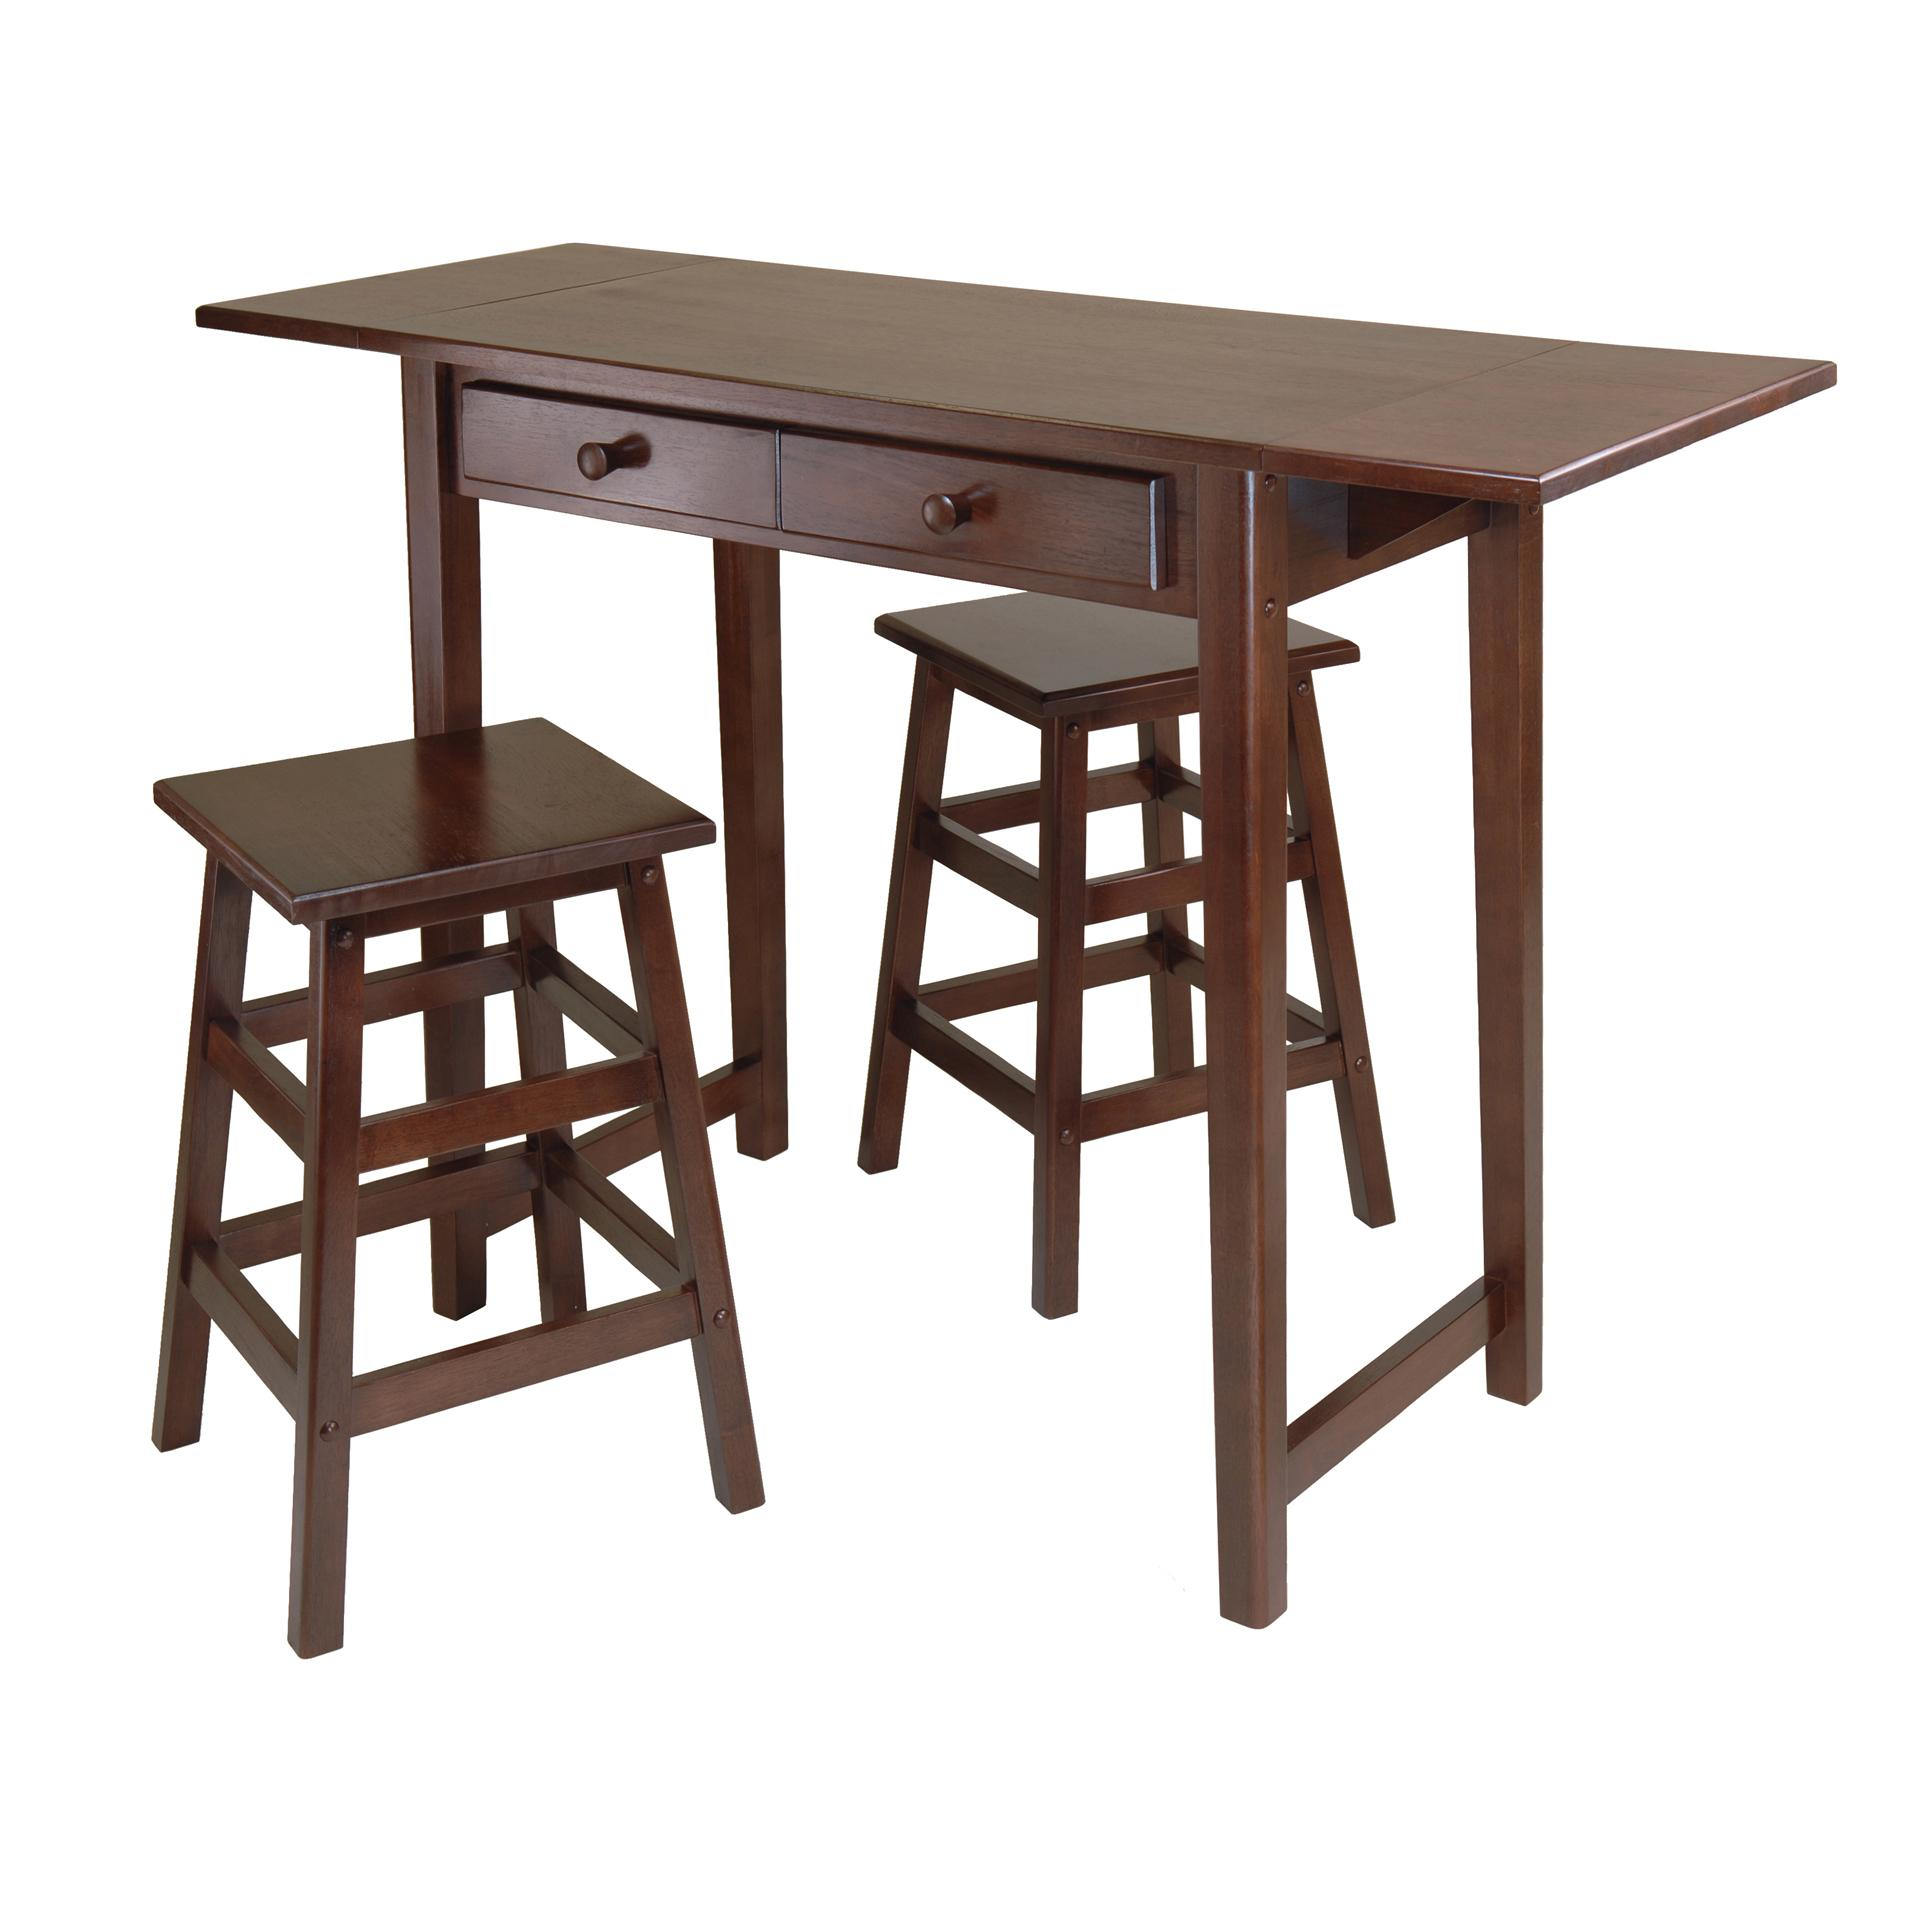 amazon com winsome mercer double drop leaf table with 2 stools view larger